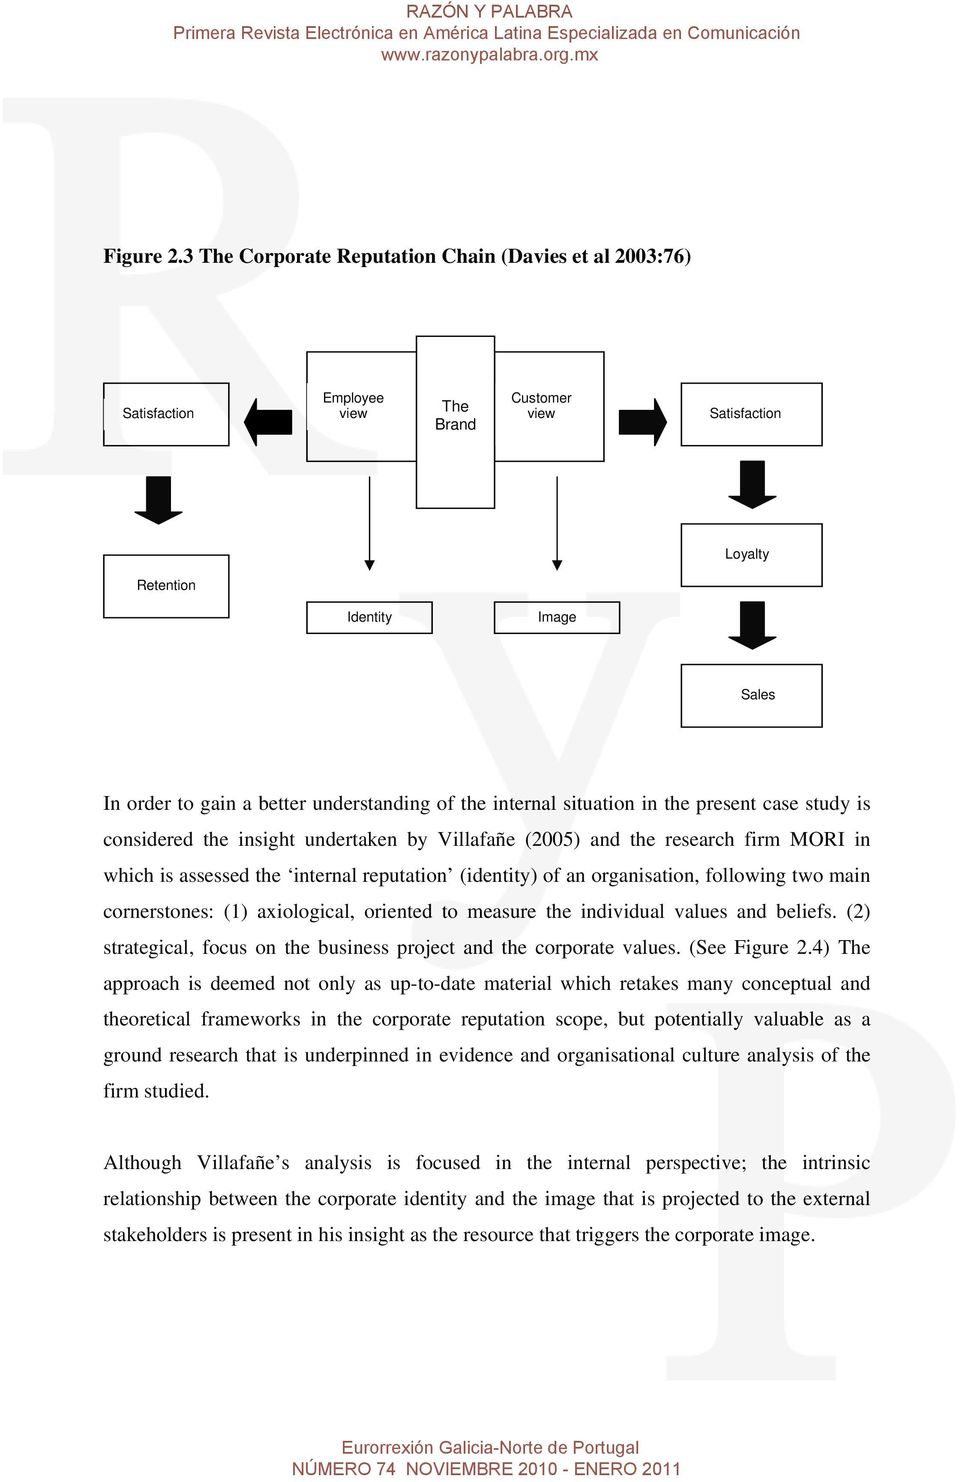 of the internal situation in the present case study is considered the insight undertaken by Villafañe (2005) and the research firm MORI in which is assessed the internal reputation (identity) of an